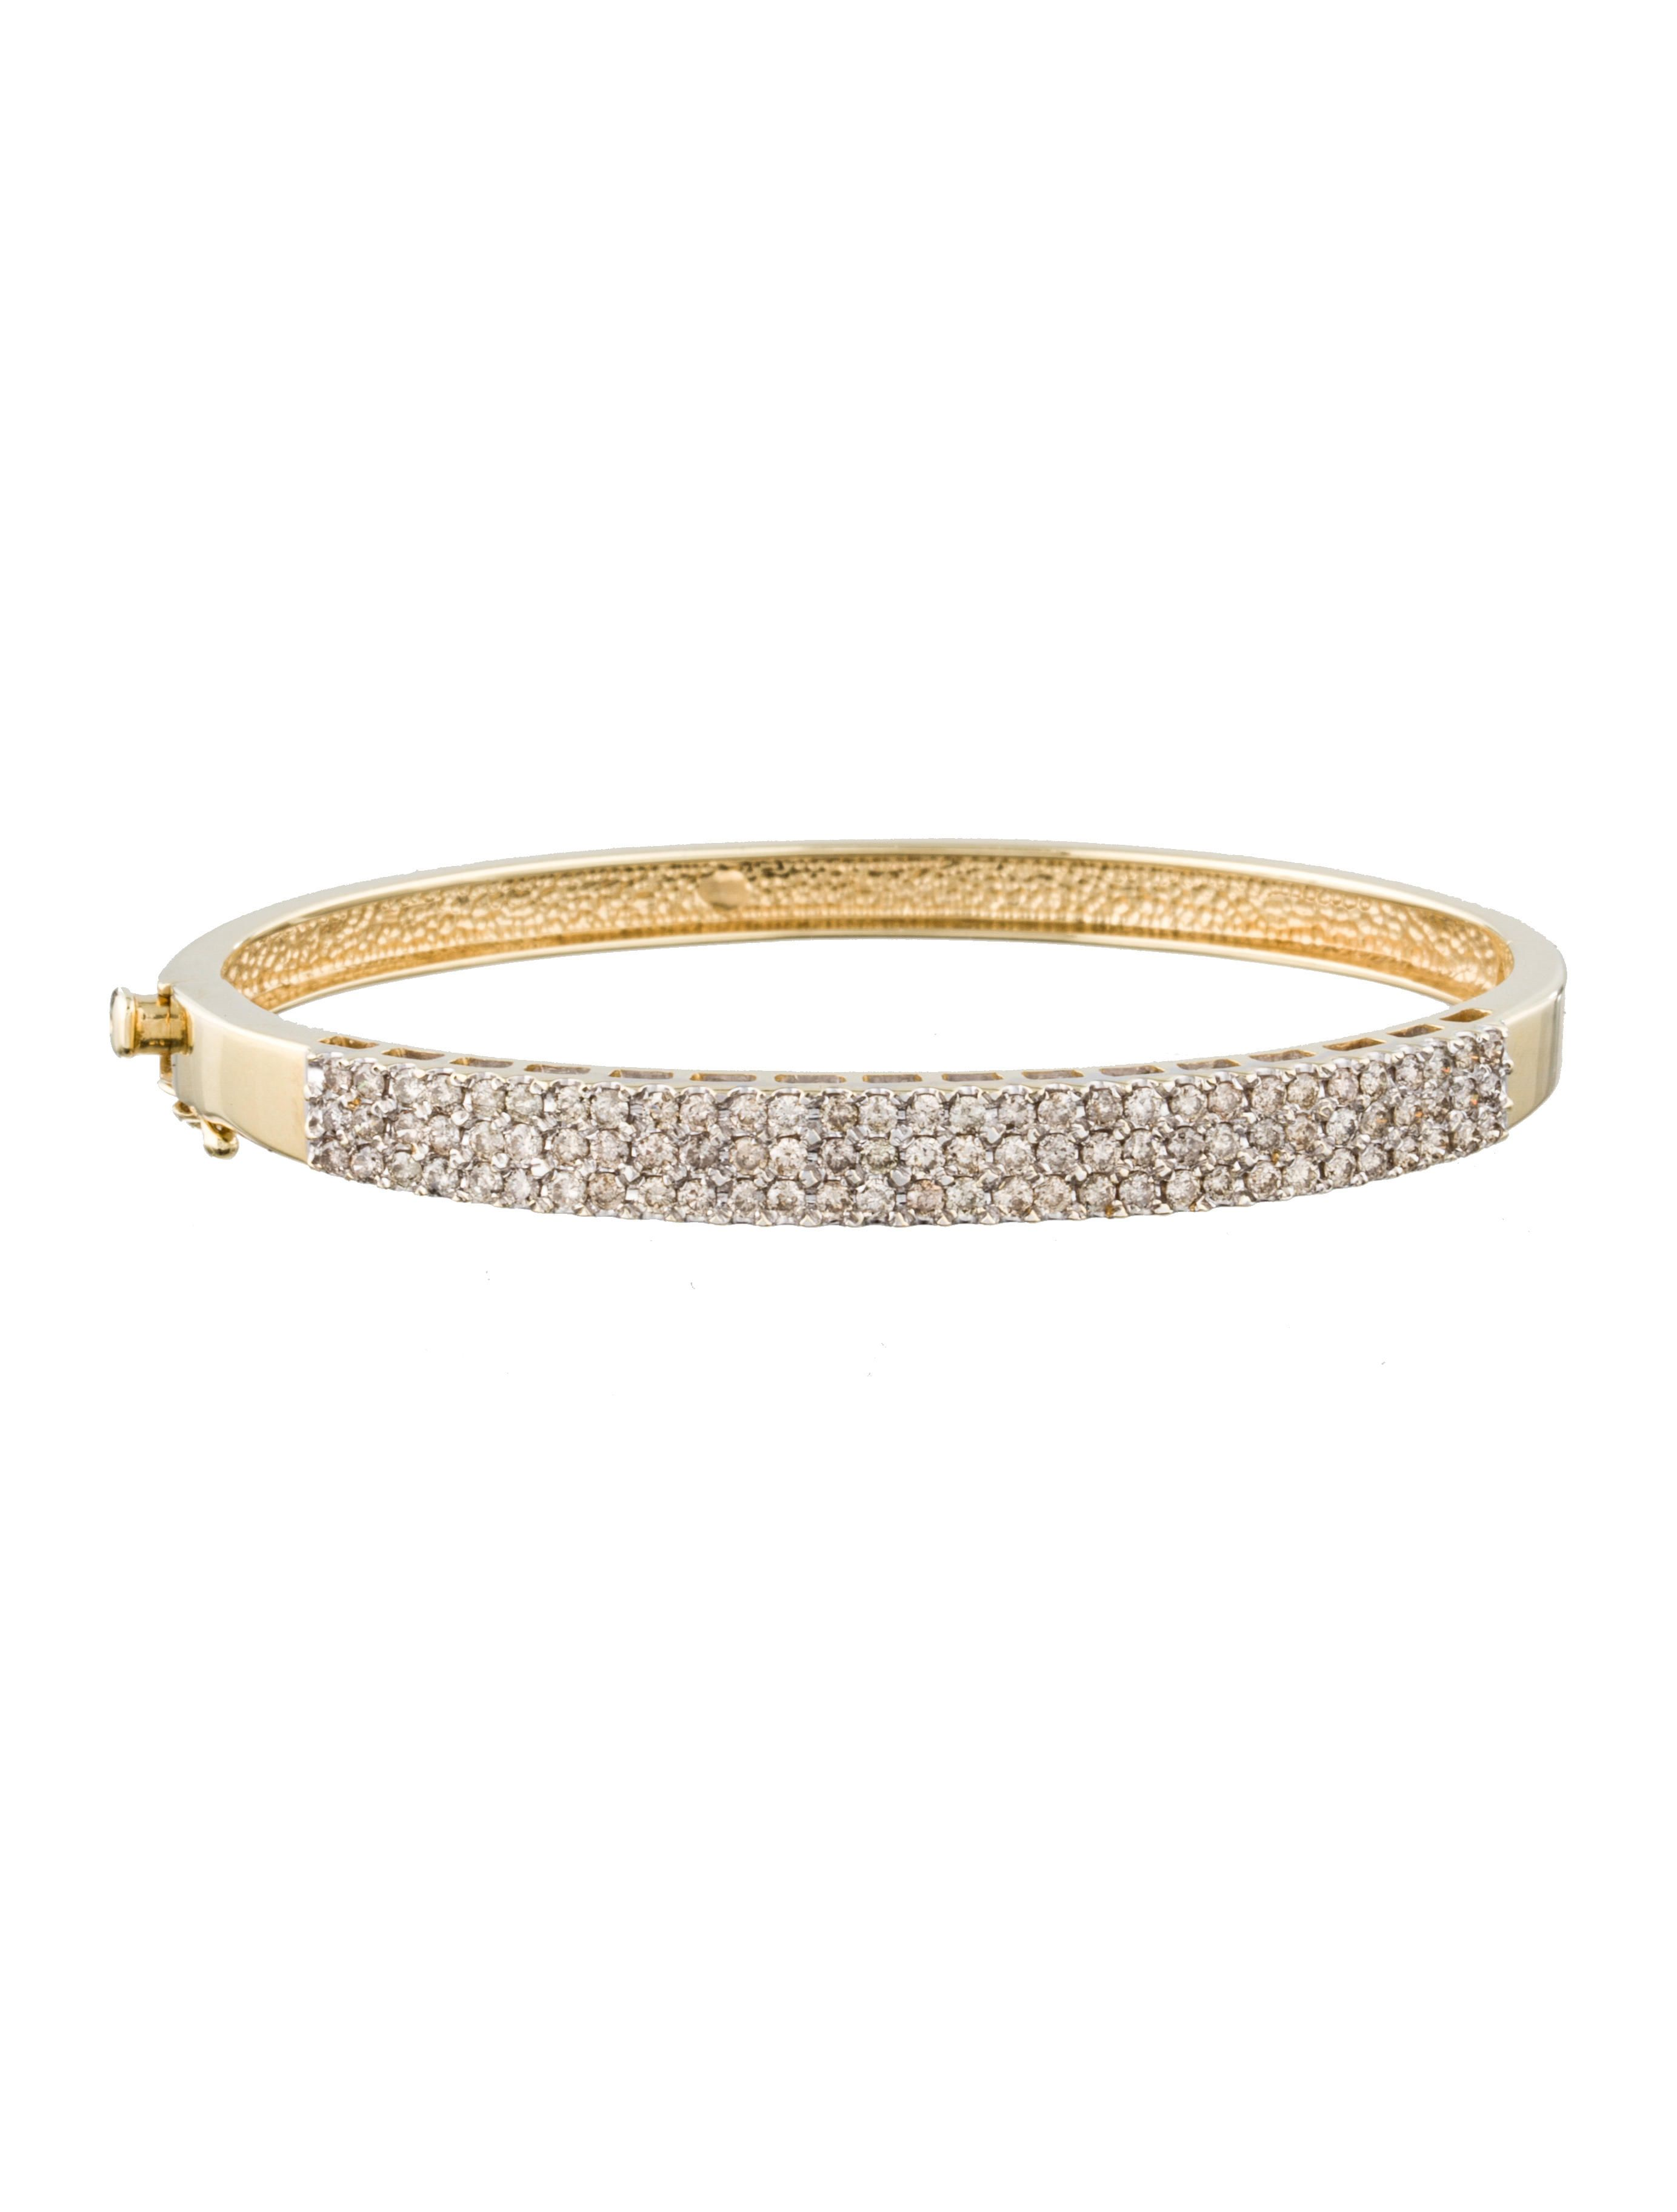 id goldbangle italian karat sale woven master diamond bracelet gold yellow j bracelets bangle at bangles jewelry flexible for